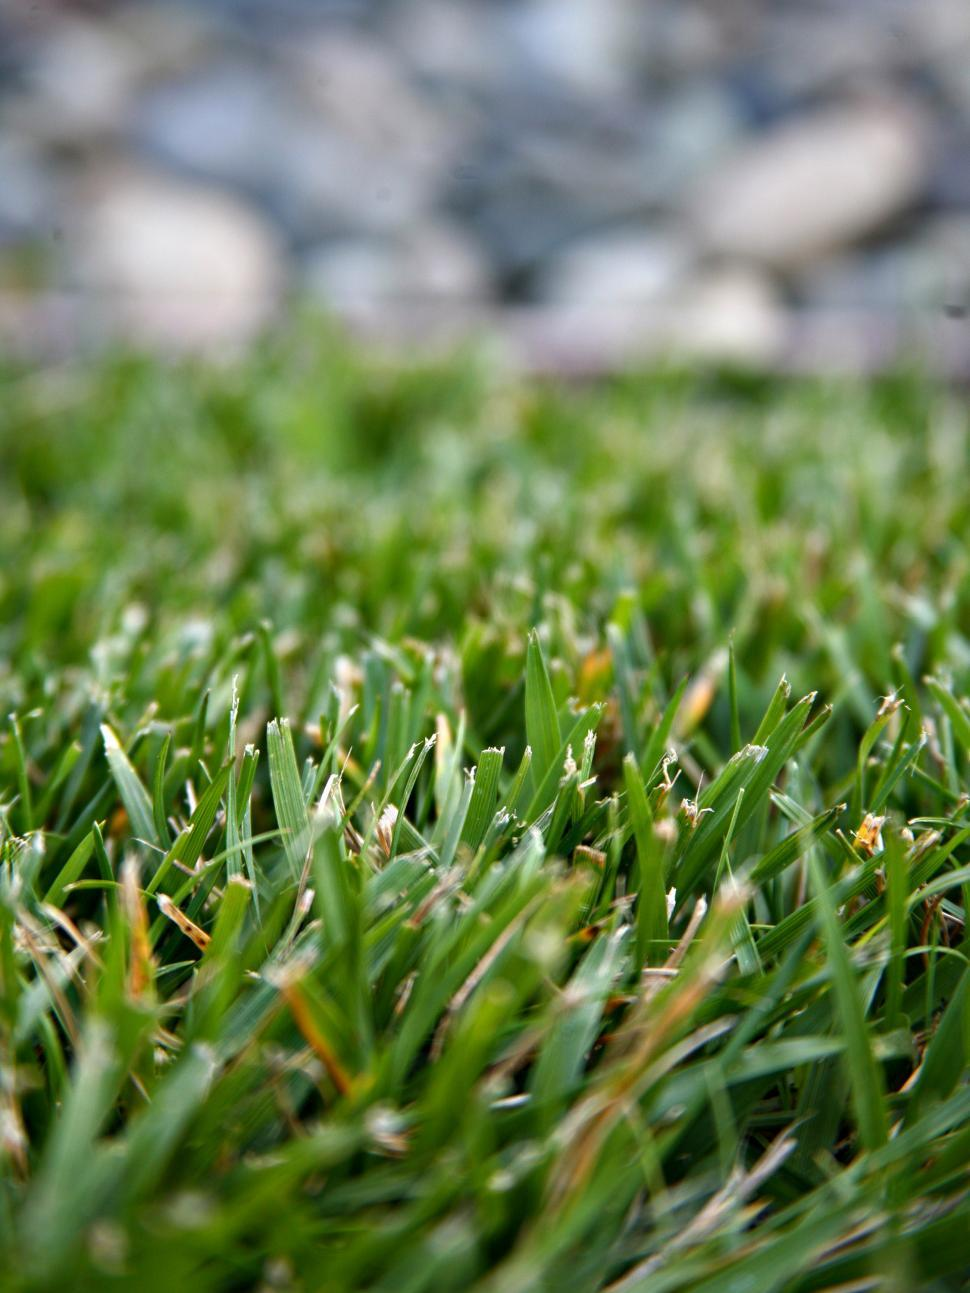 Download Free Stock HD Photo of Grass Perspective Online